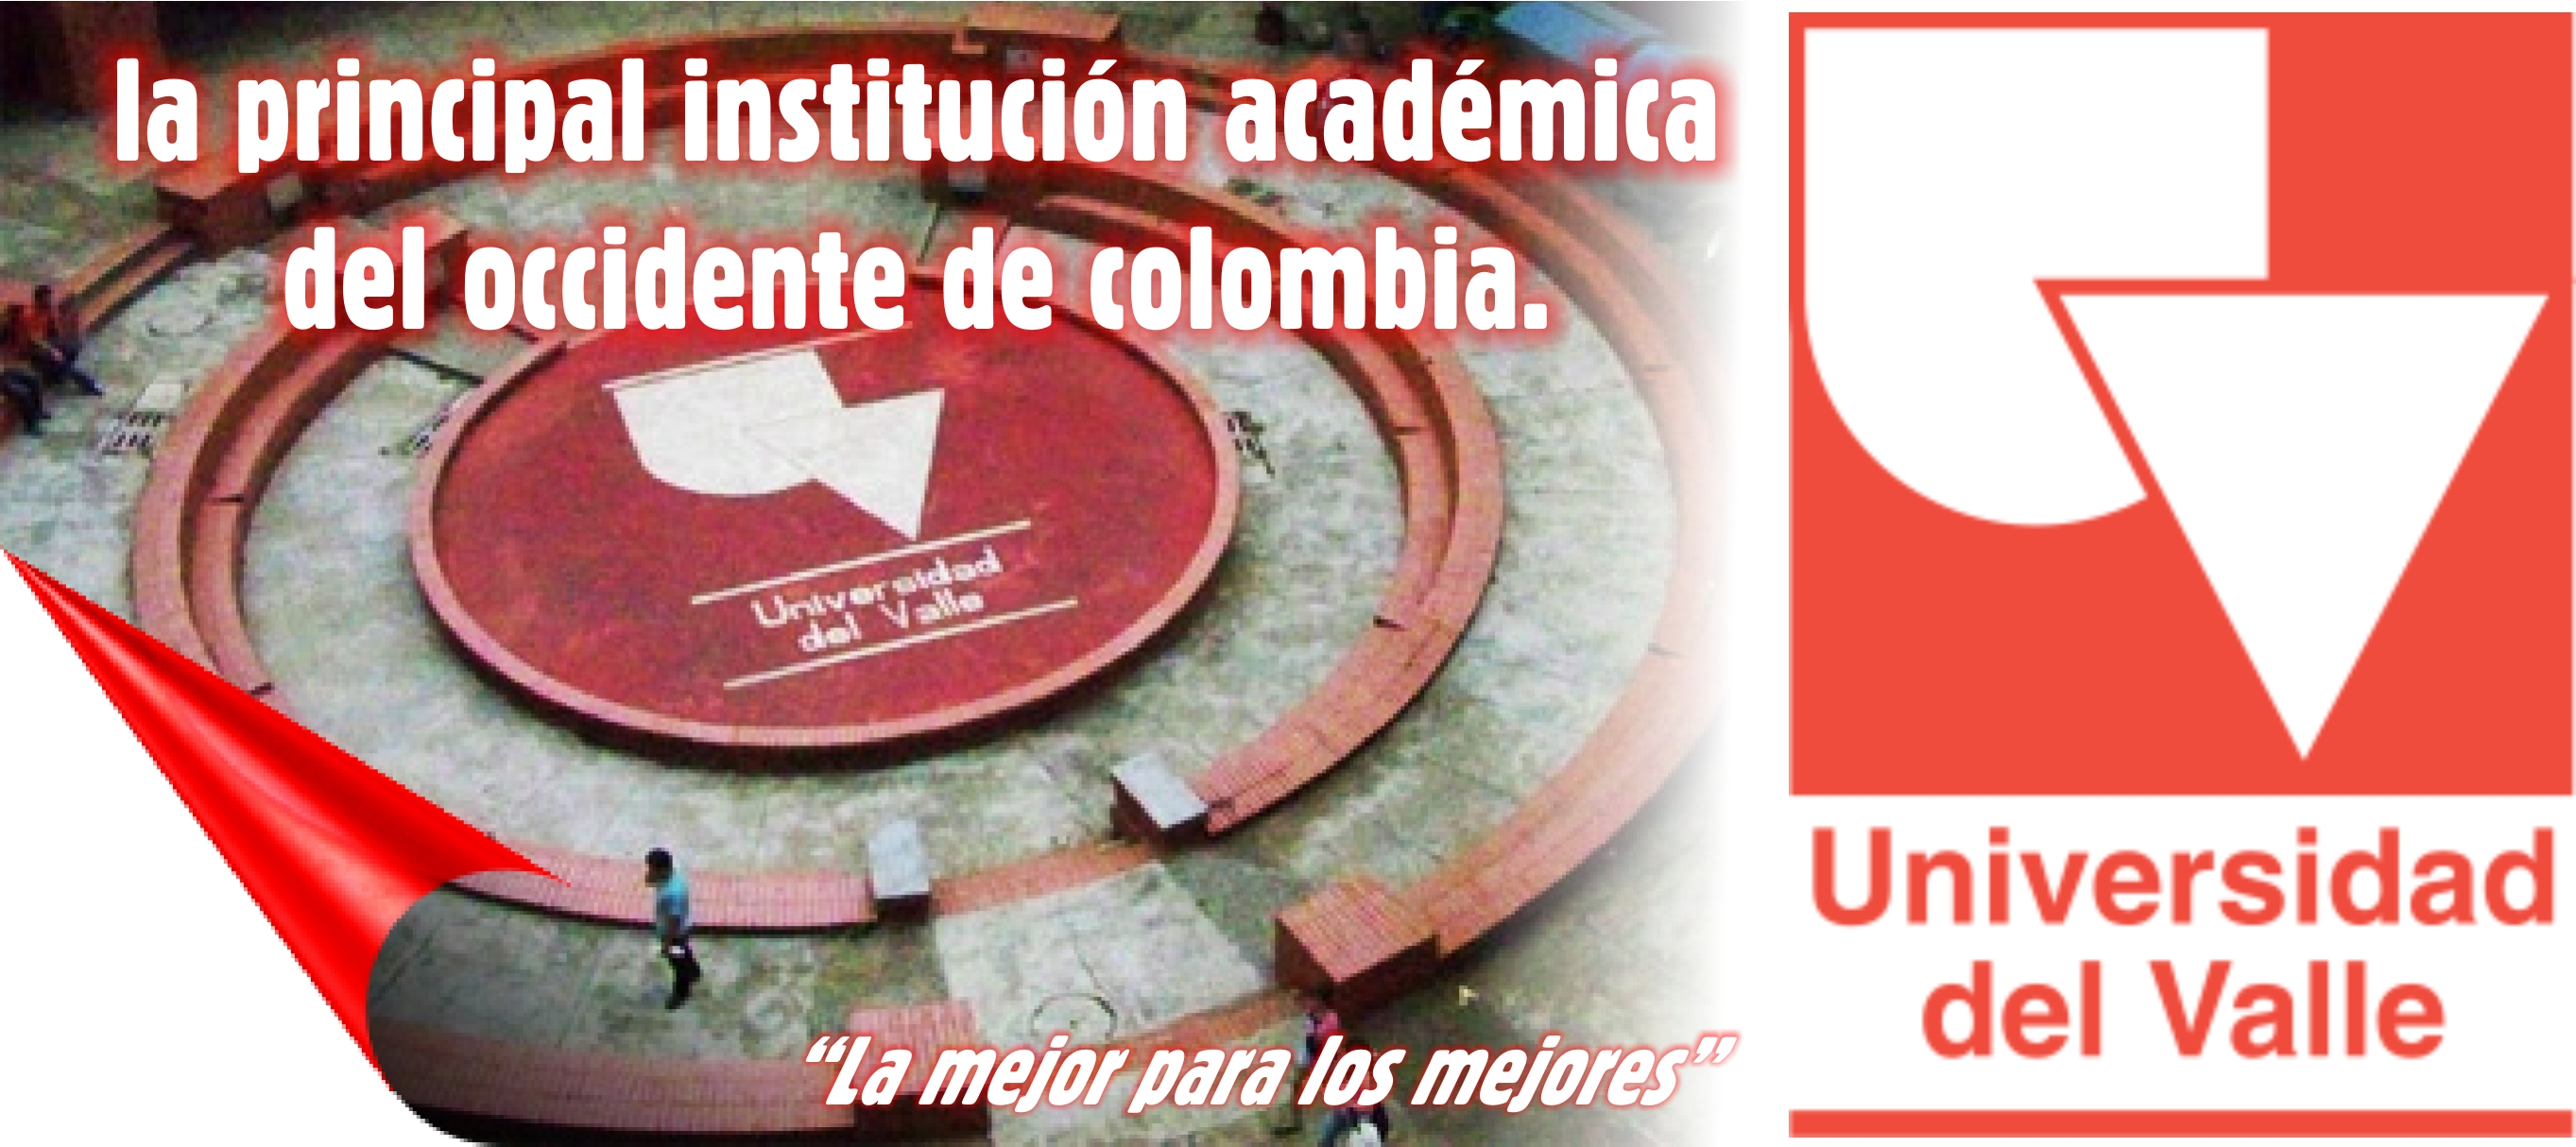 Universidad del Valle, la principal institución académica del occidente de colombia.